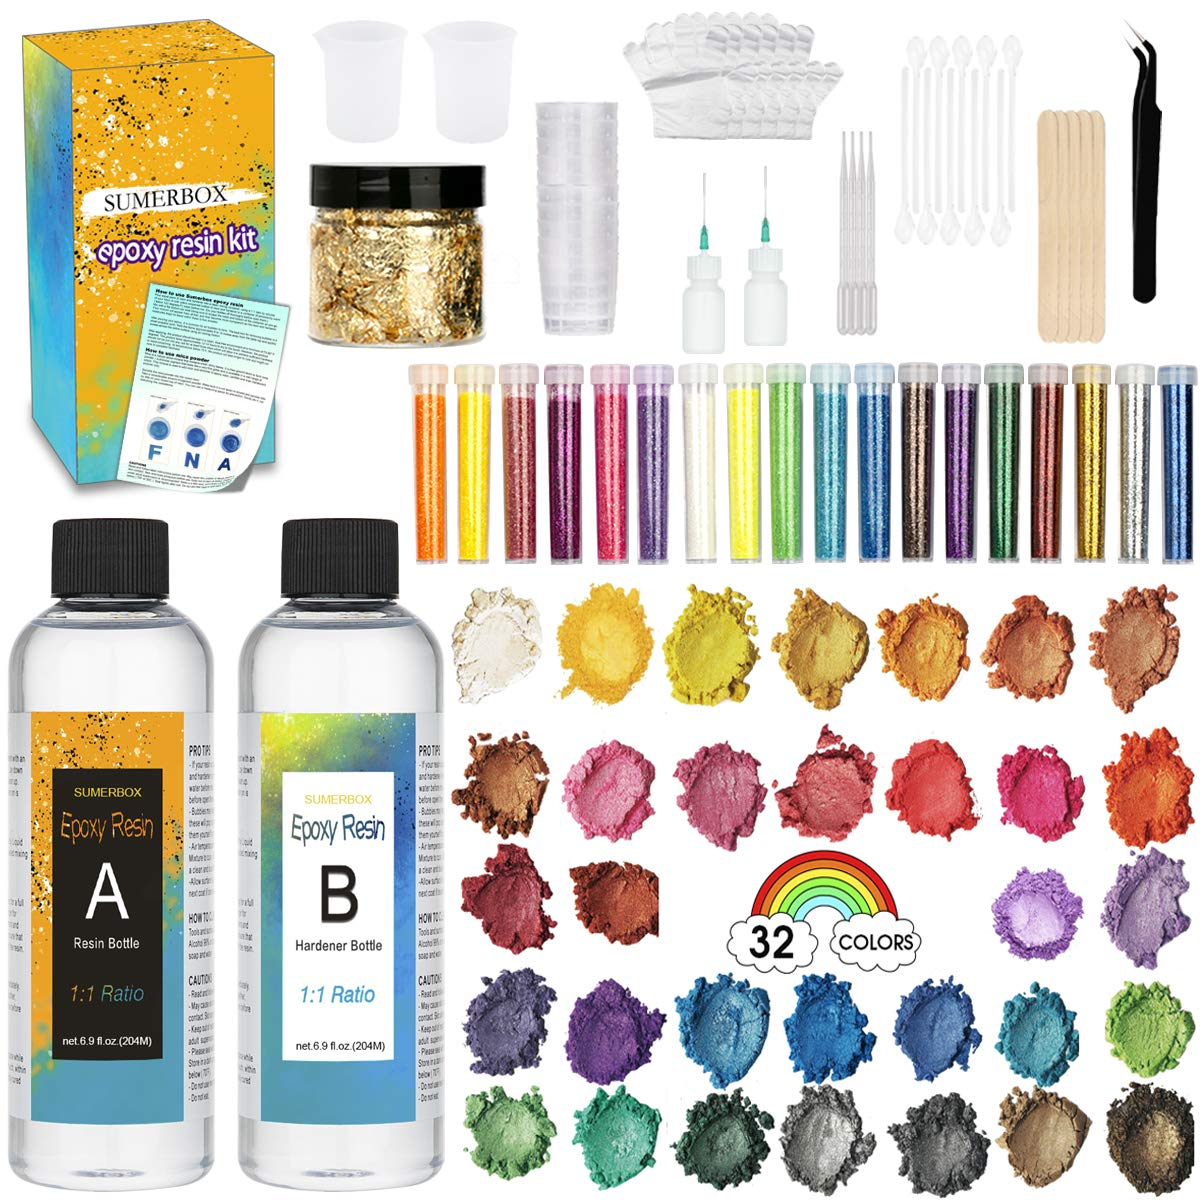 Clear-Cast-Epoxy-Resin-Kit, Cast Resin, Mica Powders, Measuring Cups, Tip Applicator Bottles, Gloves, Pipettes, Mixing Sticks, Clear Spoons